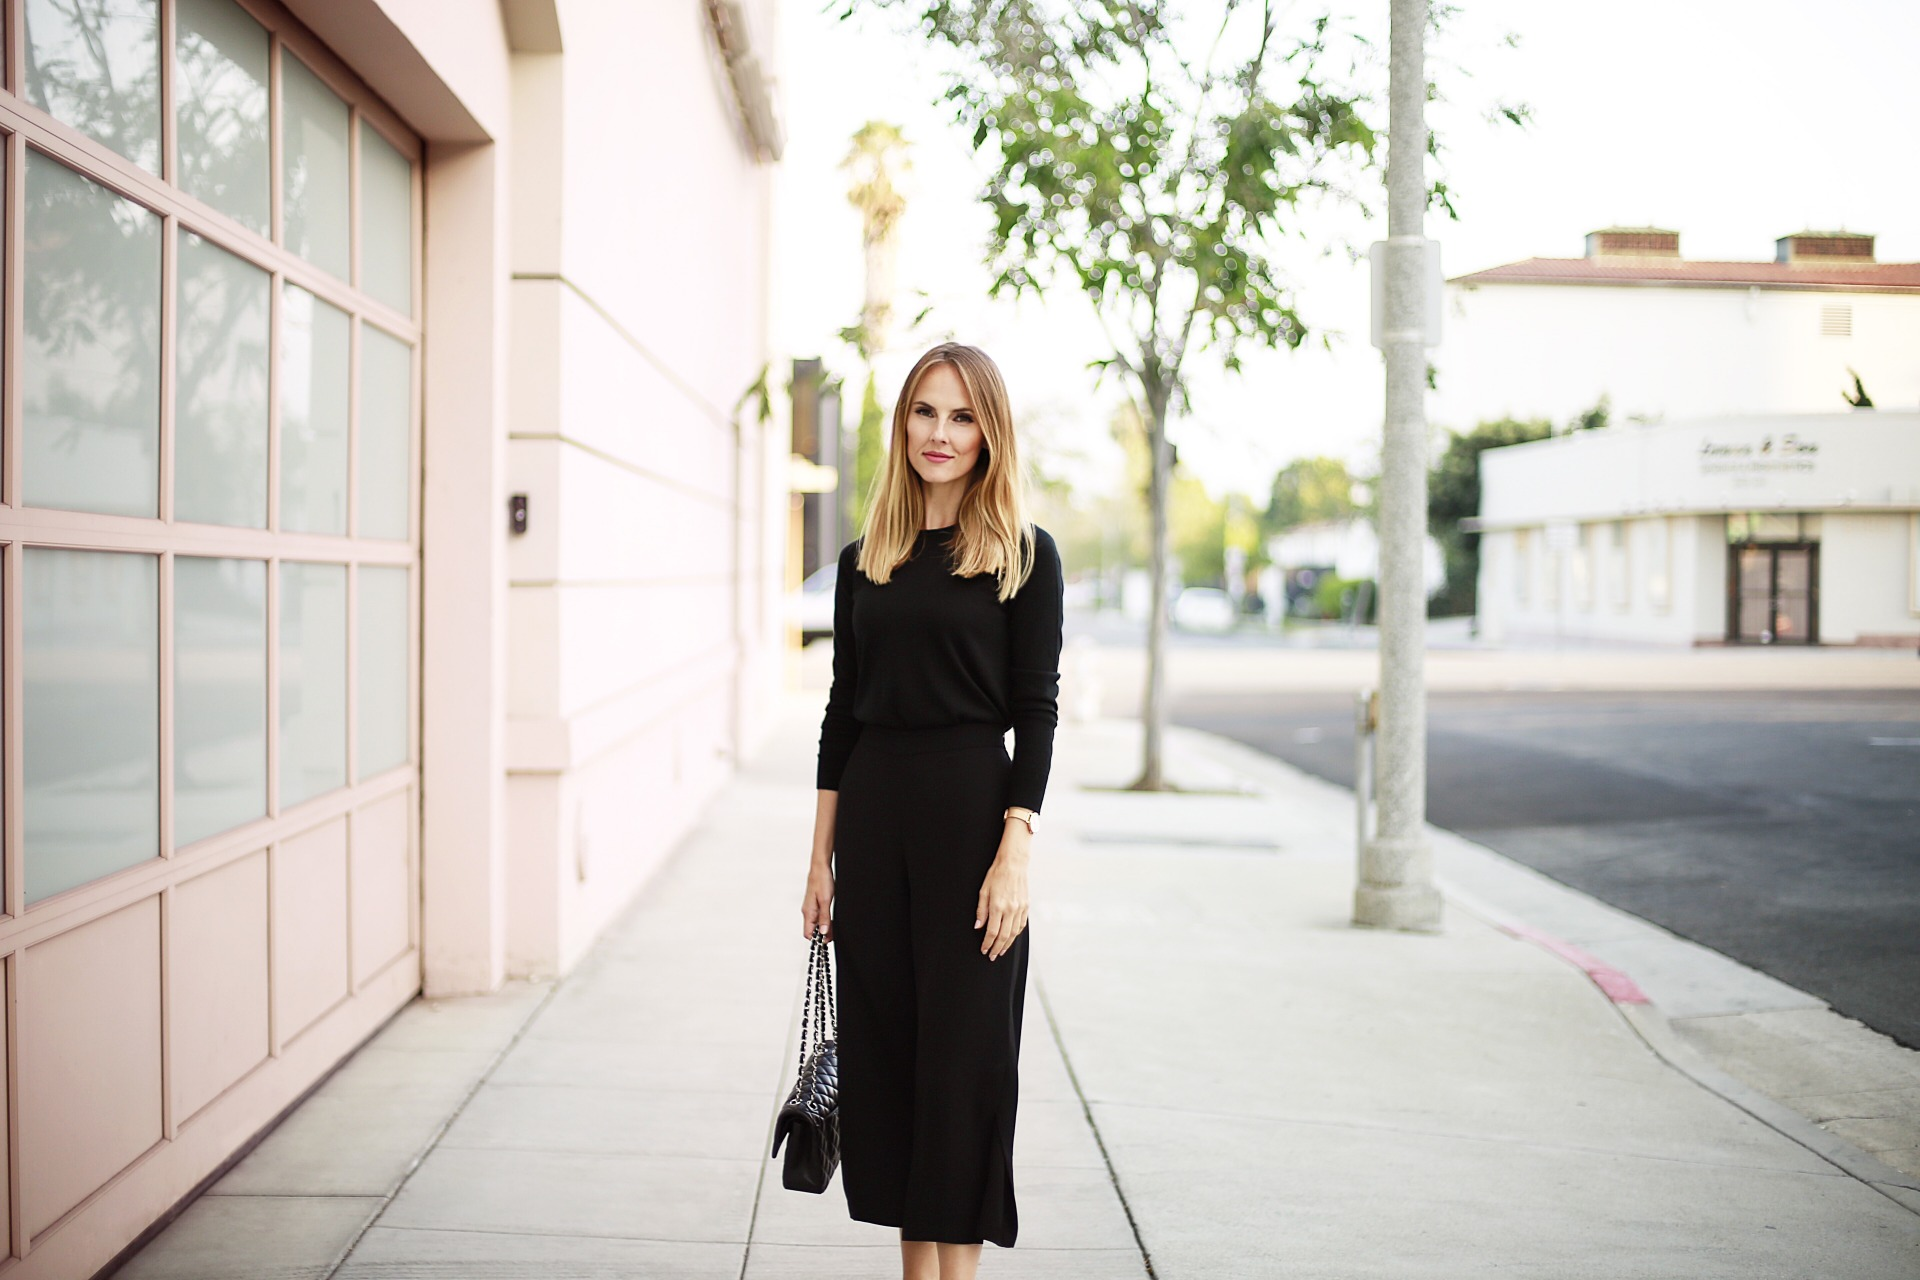 8b1f04eaa265b Banana-Republic-Blogger-Simply-Sophisticated-Summer -All-Black-Outfit-Danielle-Hastings